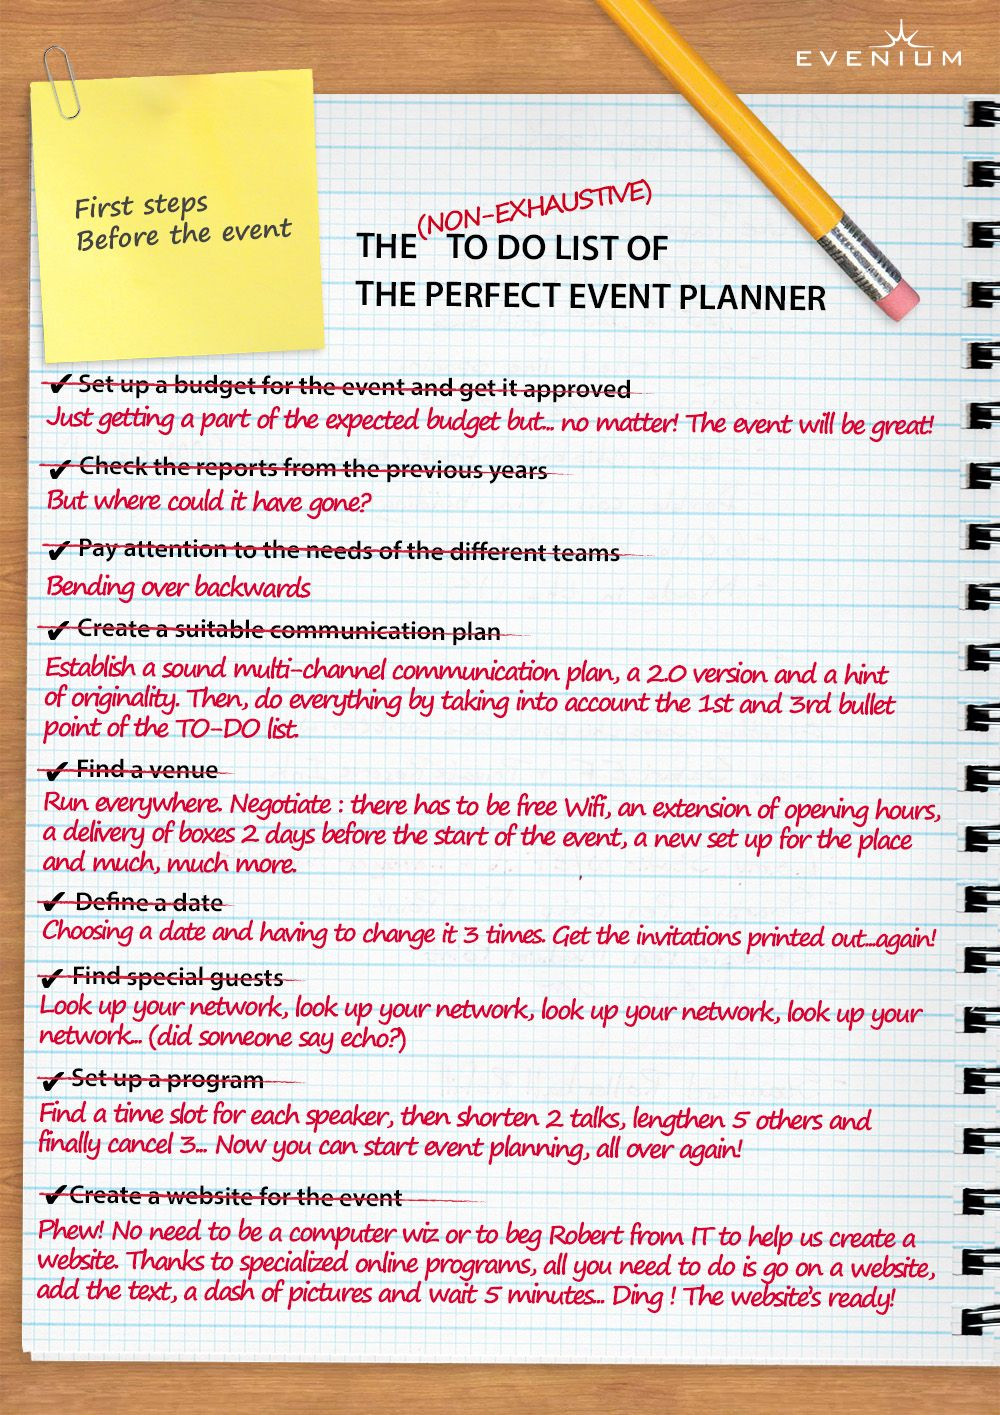 discover the to do list of the perfect event planner event